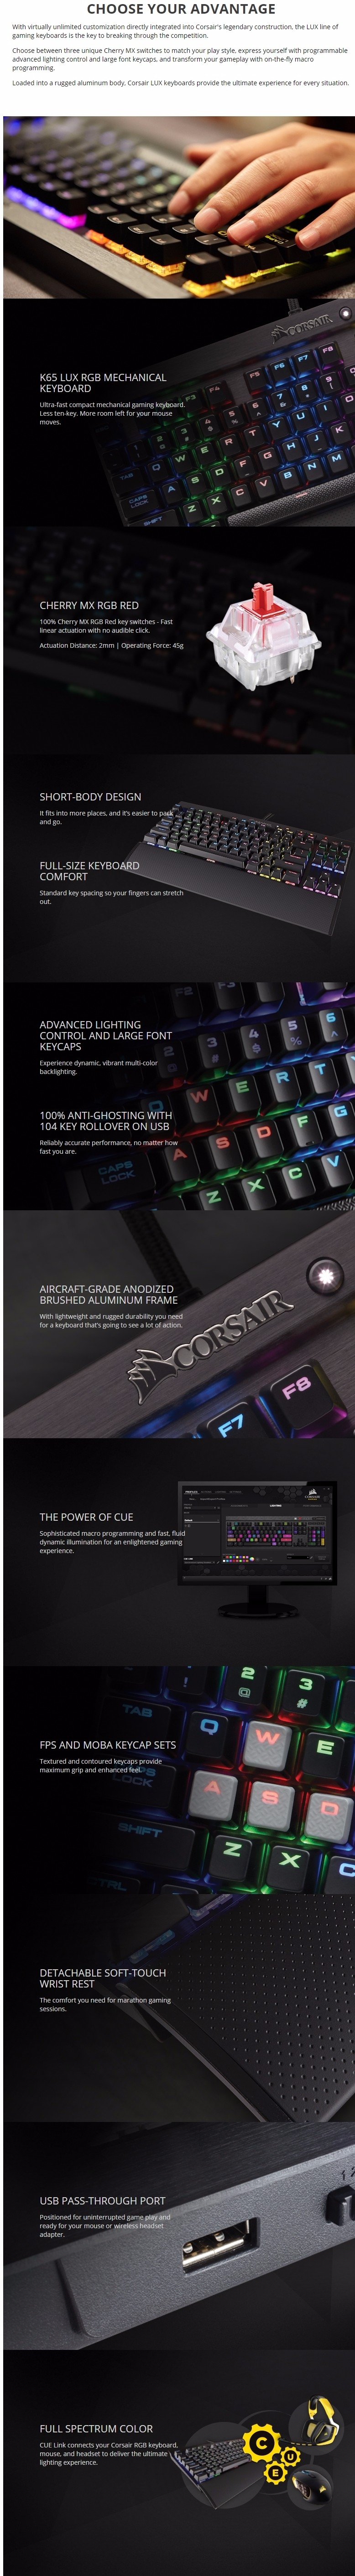 Corsair Gaming Compact K65 LUX RGB Cherry MX Mechanical Keyboard - Red